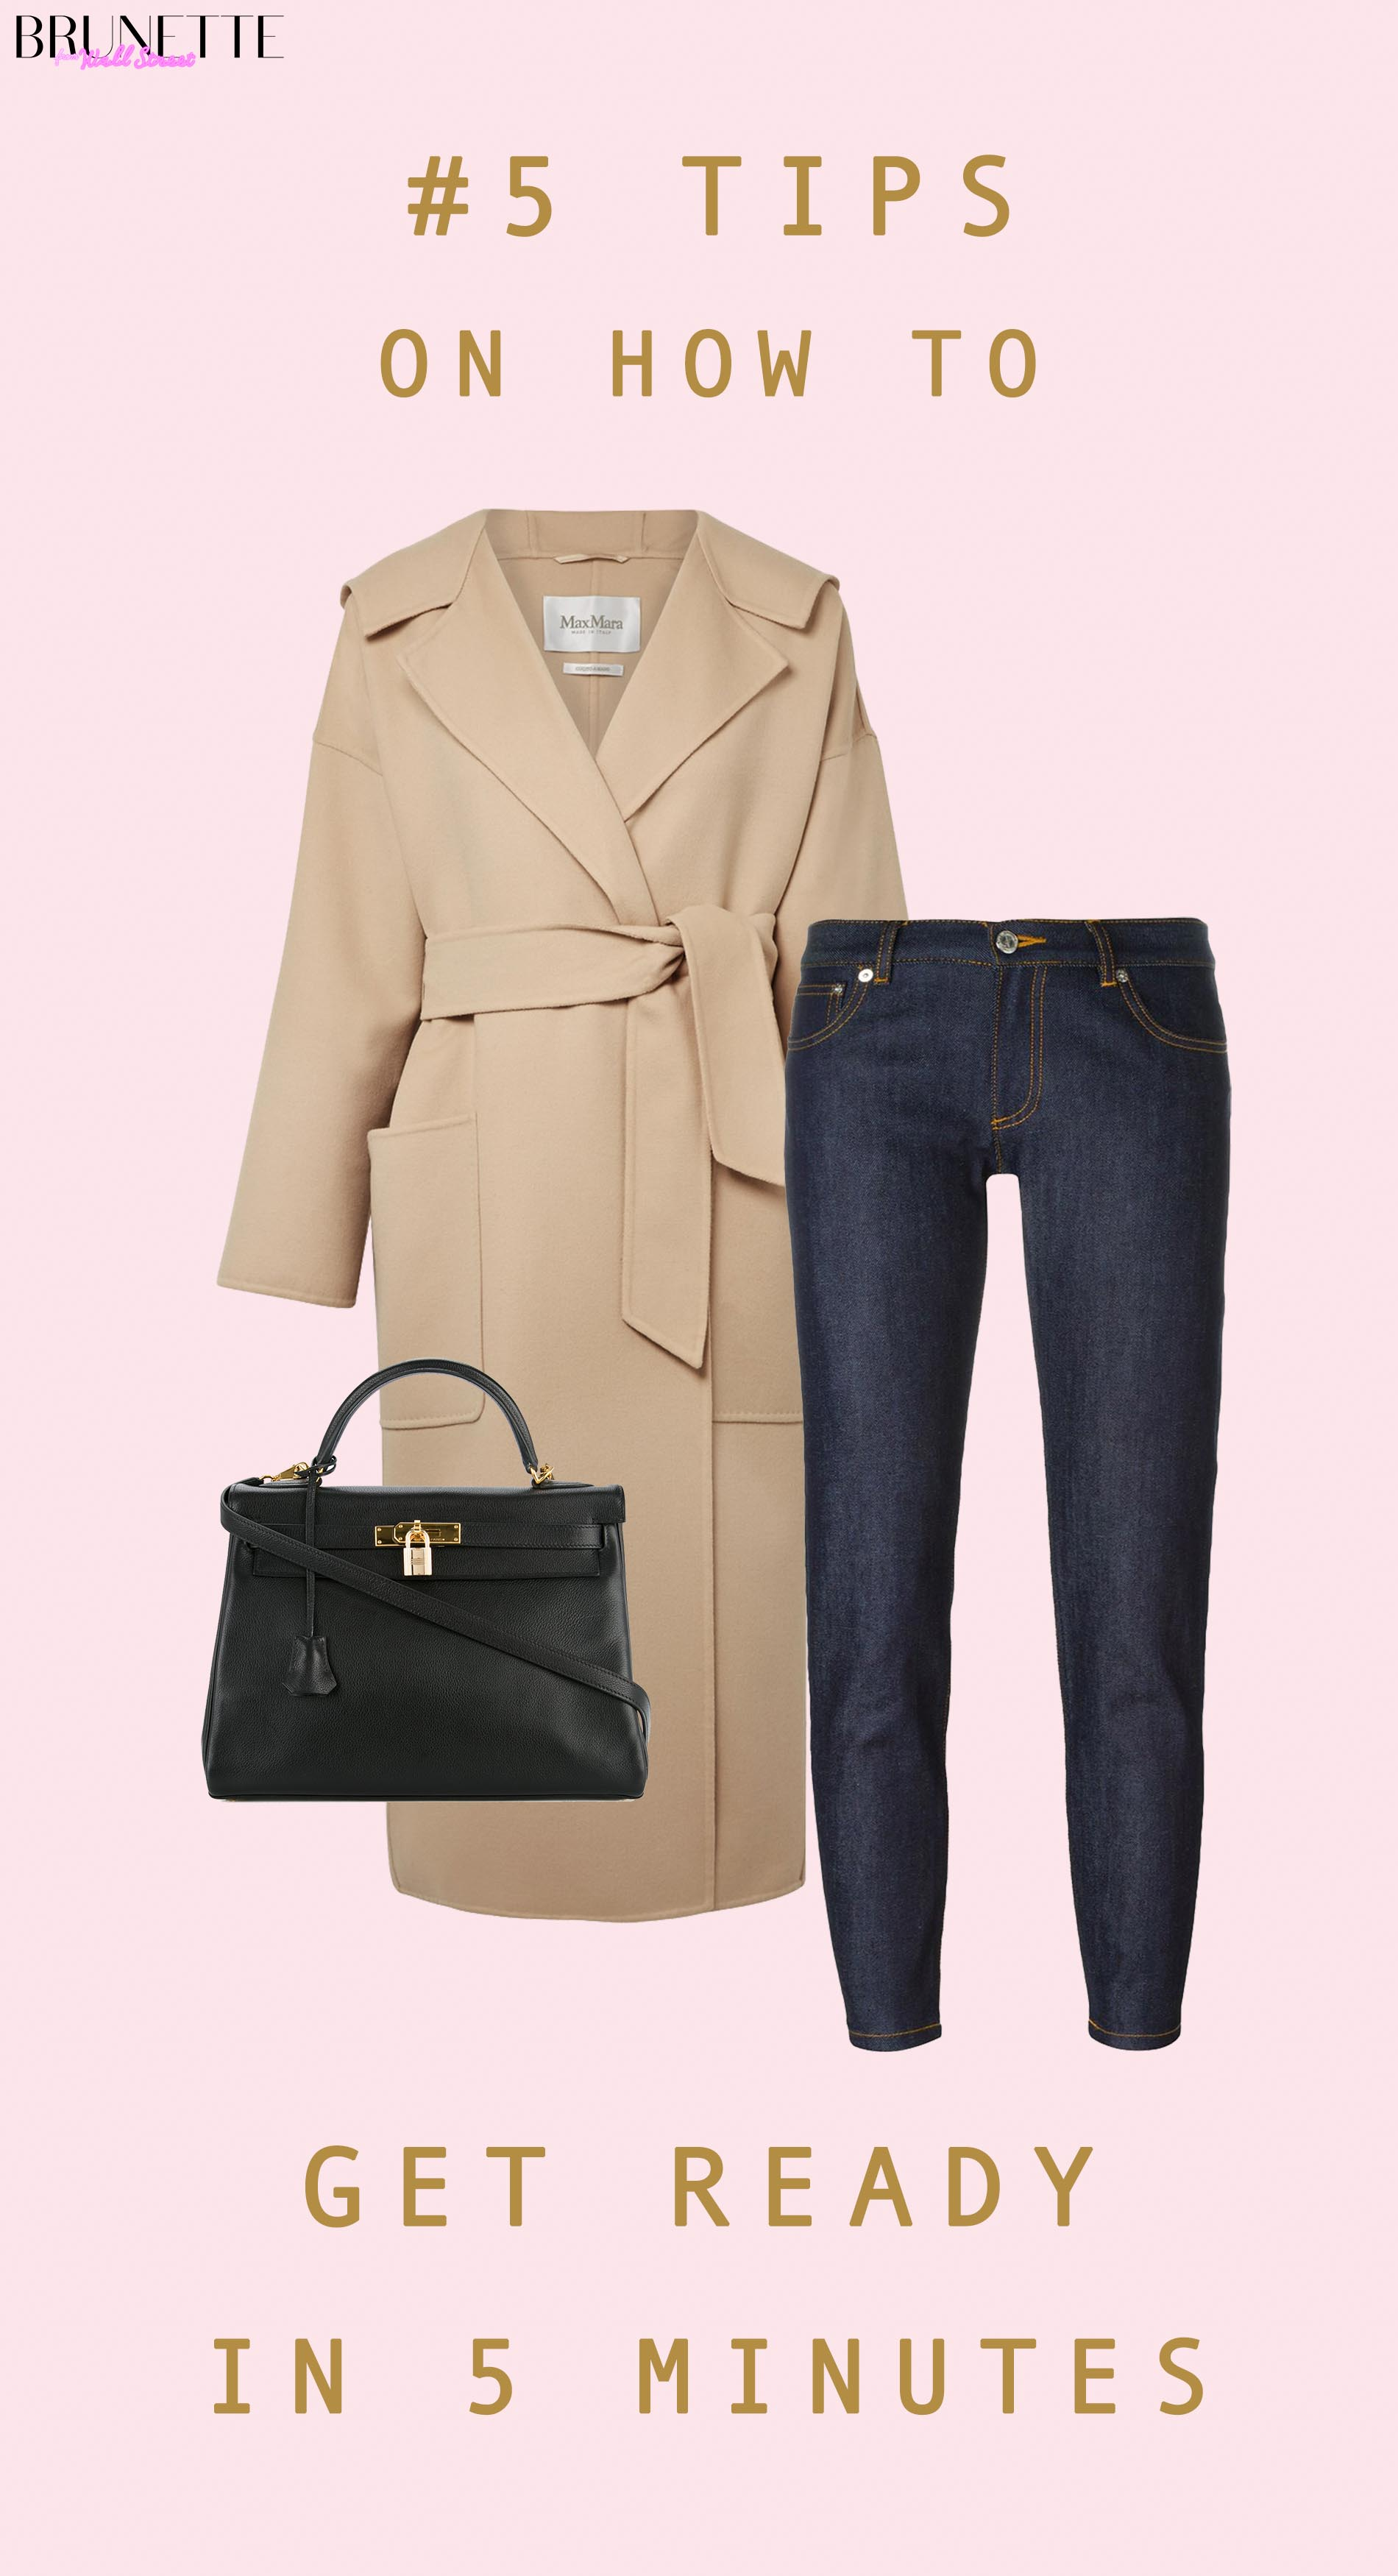 Max Mara camel coat, dark jeans, Hermes bag with text overlay #5 Tips on how to get ready in 5 minutes